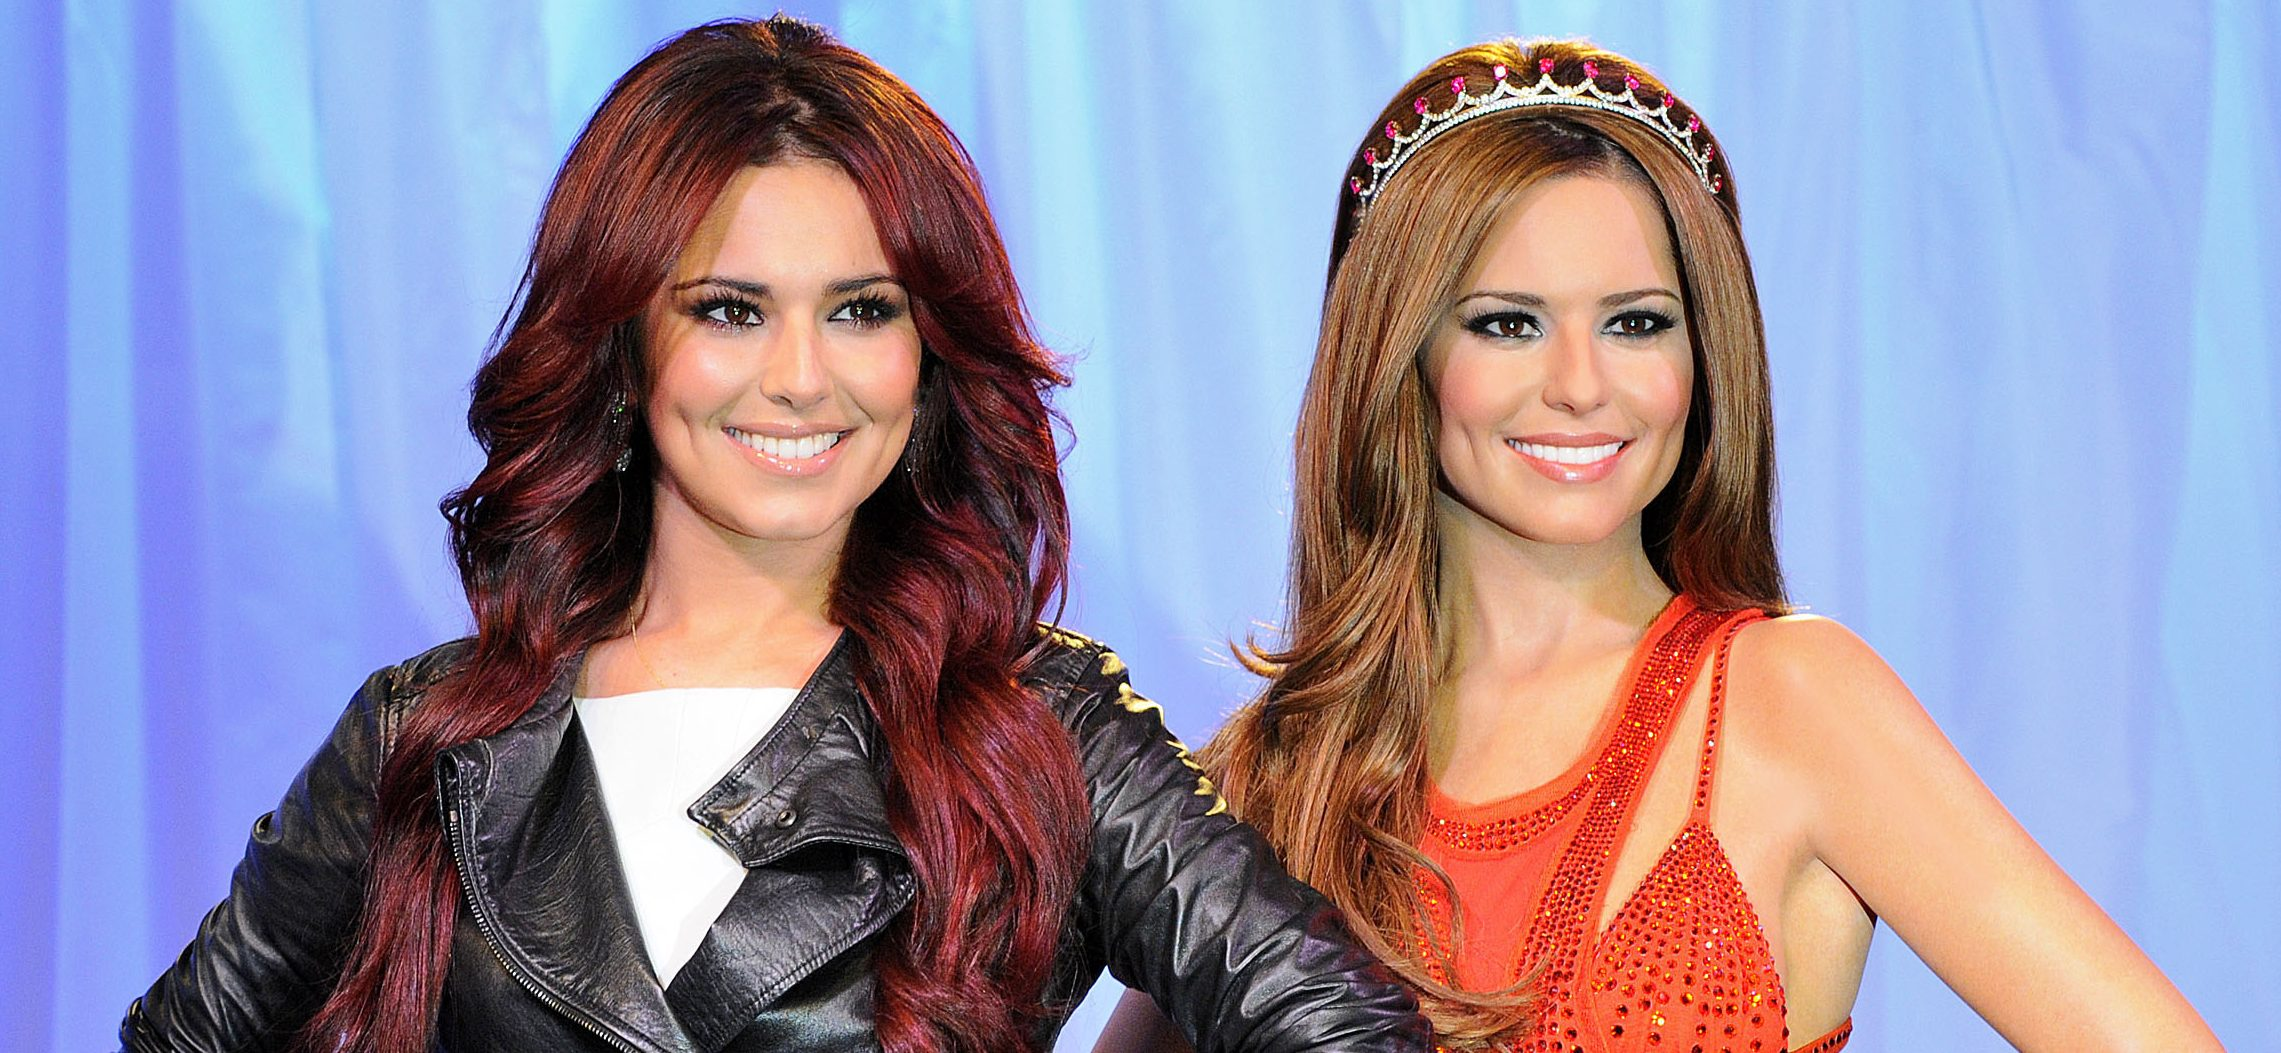 Cheryl's waxwork is 'removed' from Madame Tussauds amid fears she's 'no longer relevant'